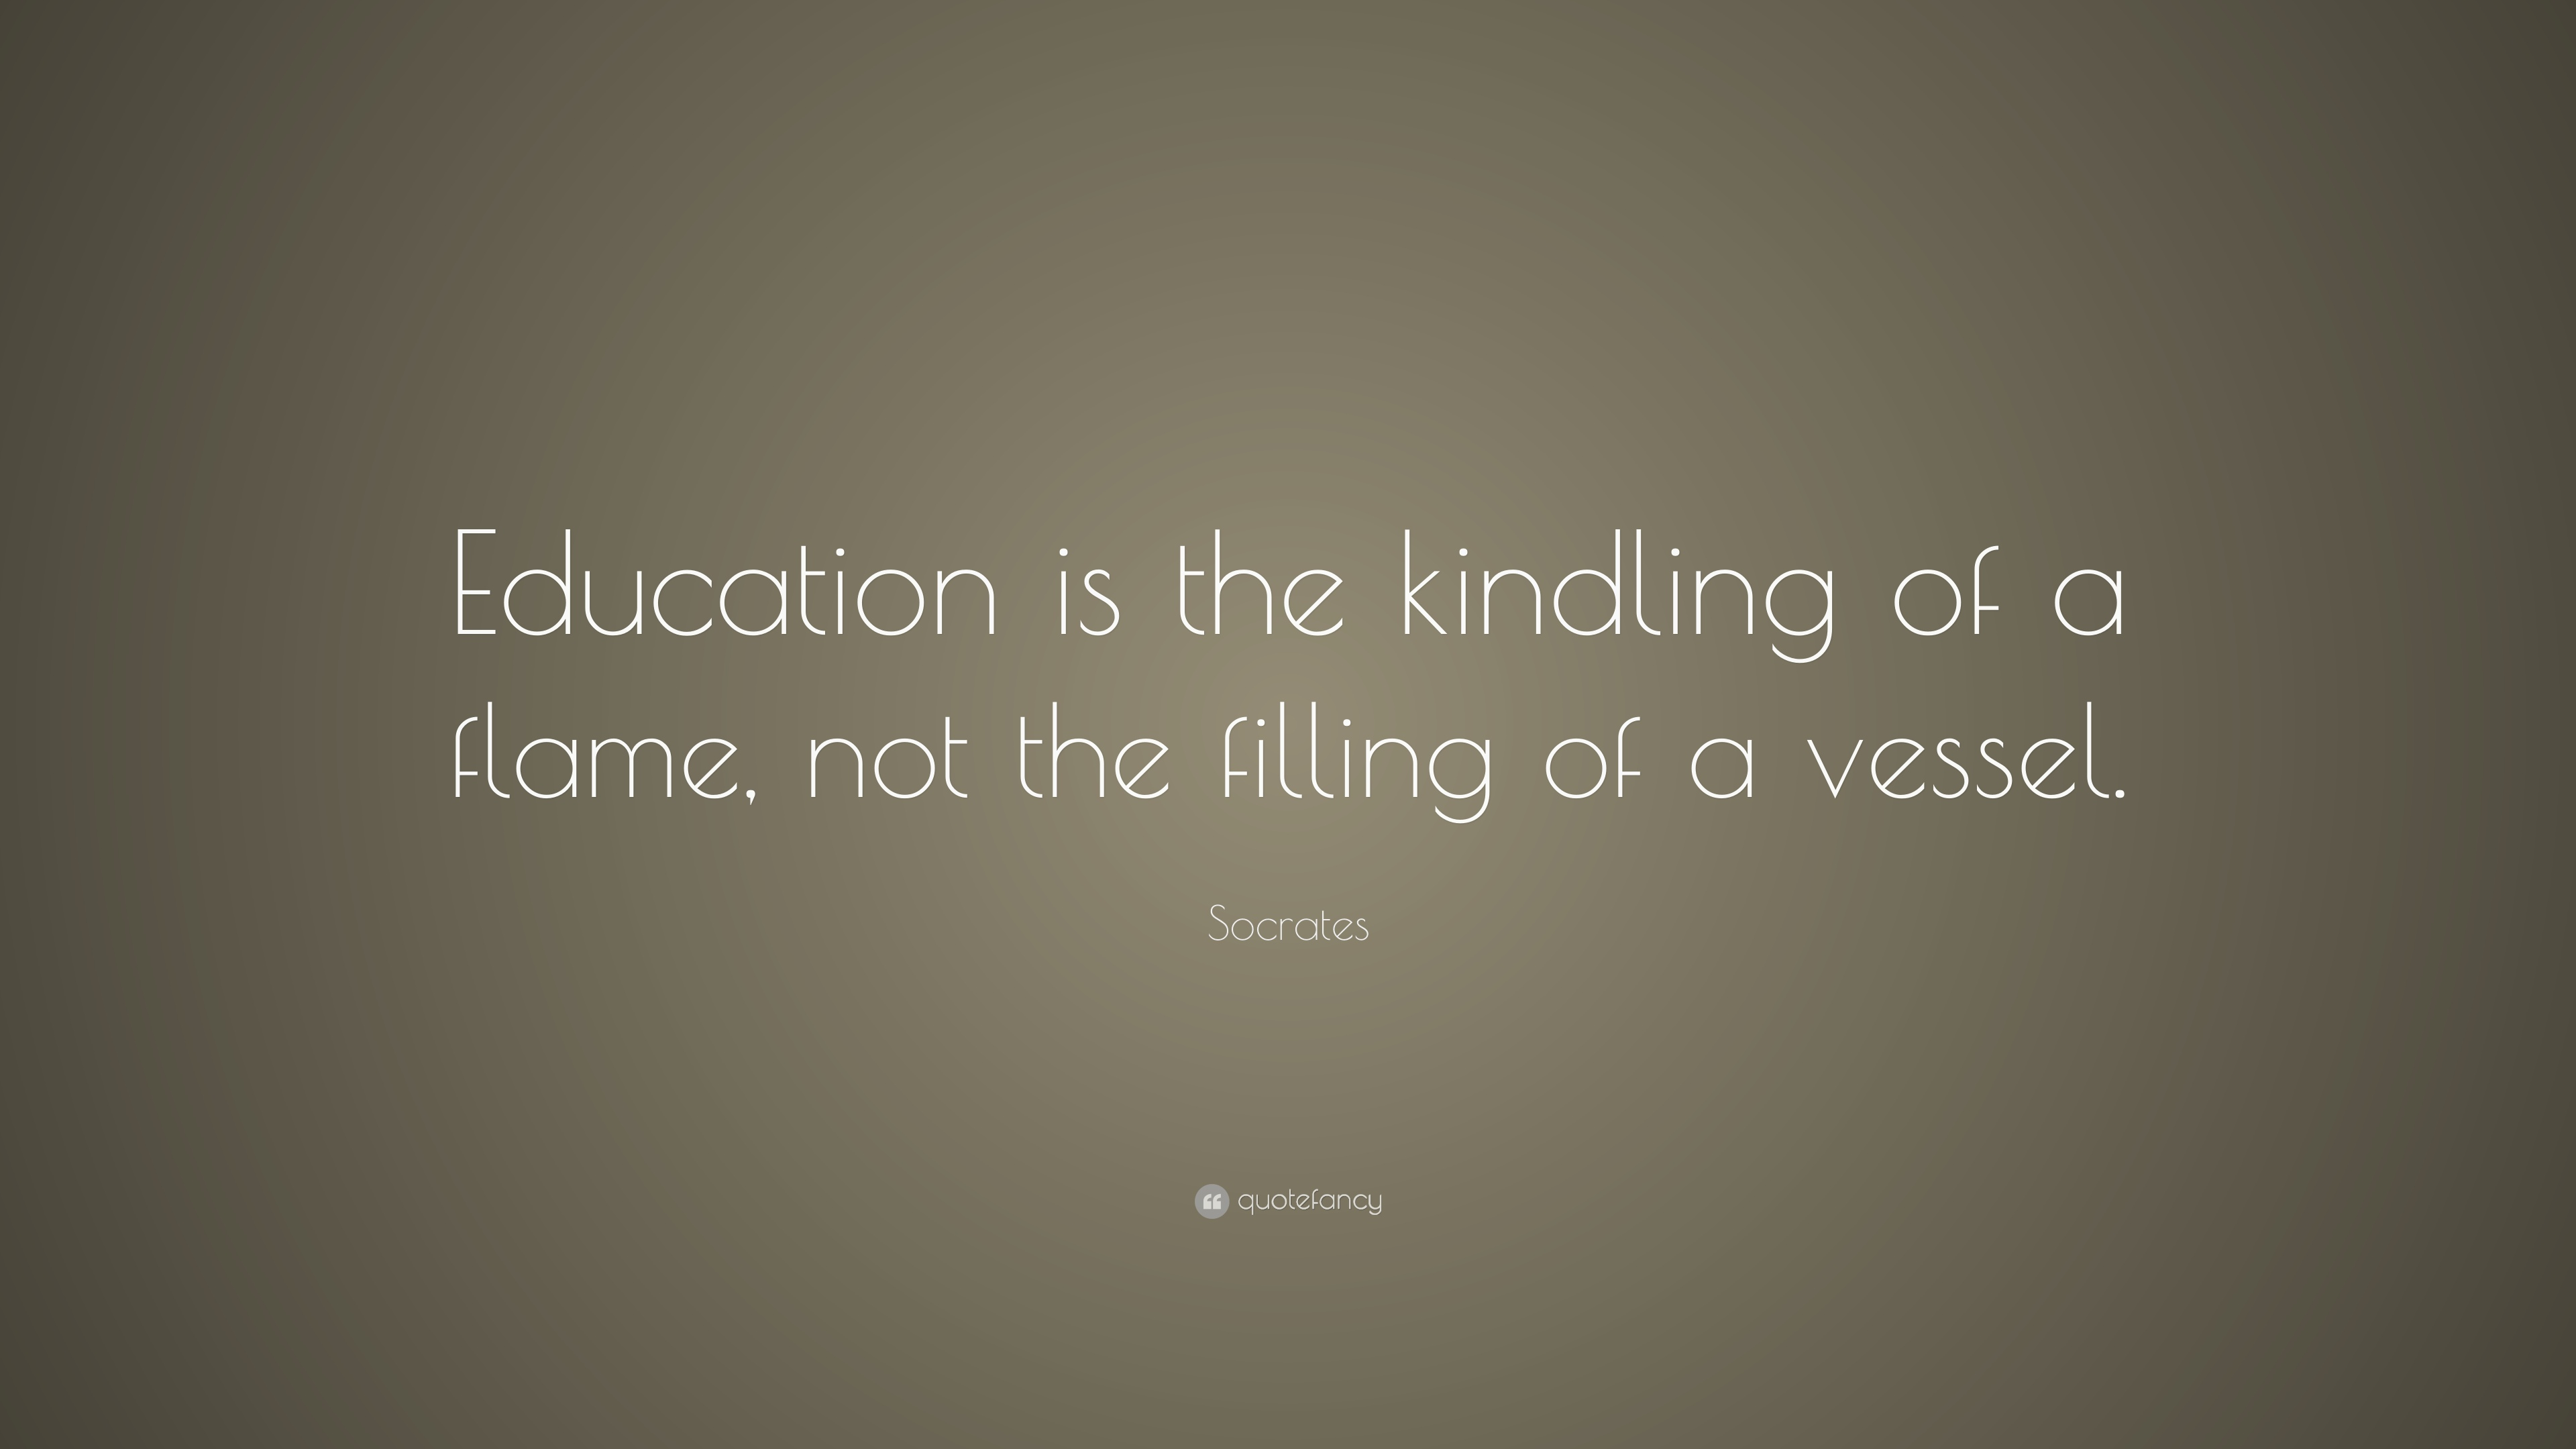 Dalai Lama Quotes Wallpapers Socrates Quote Education Is The Kindling Of A Flame Not